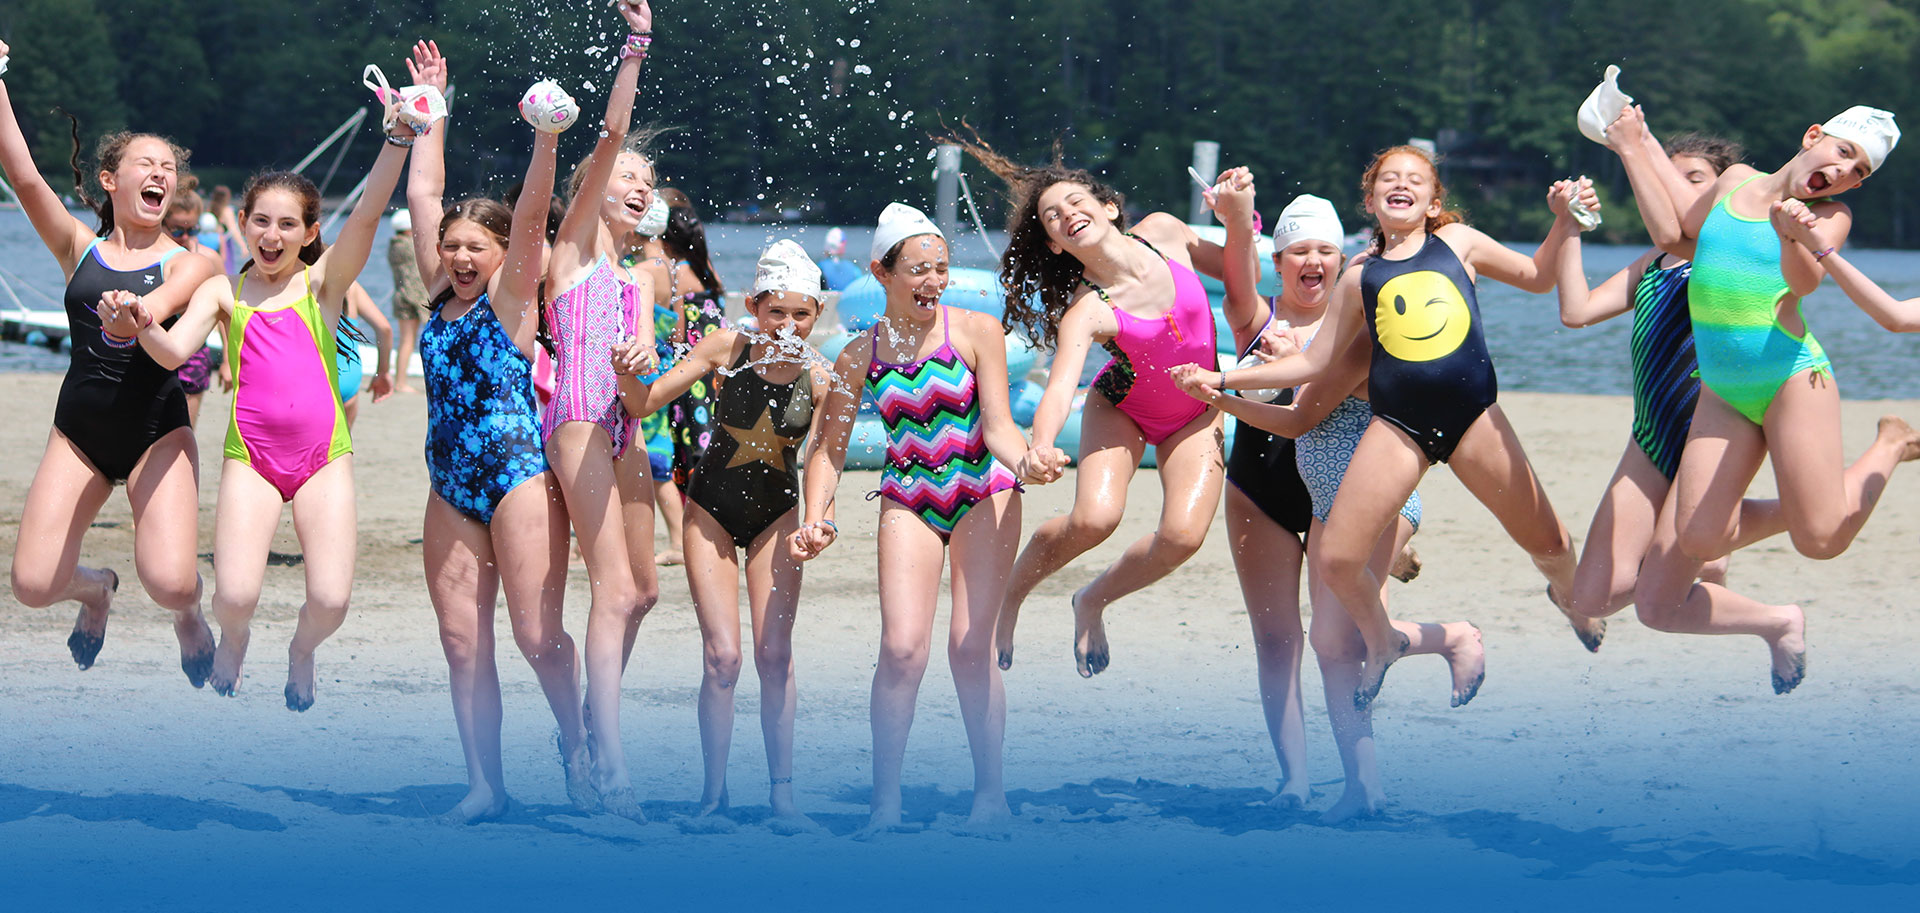 Point O'Pines, A Summer Camp For Girls